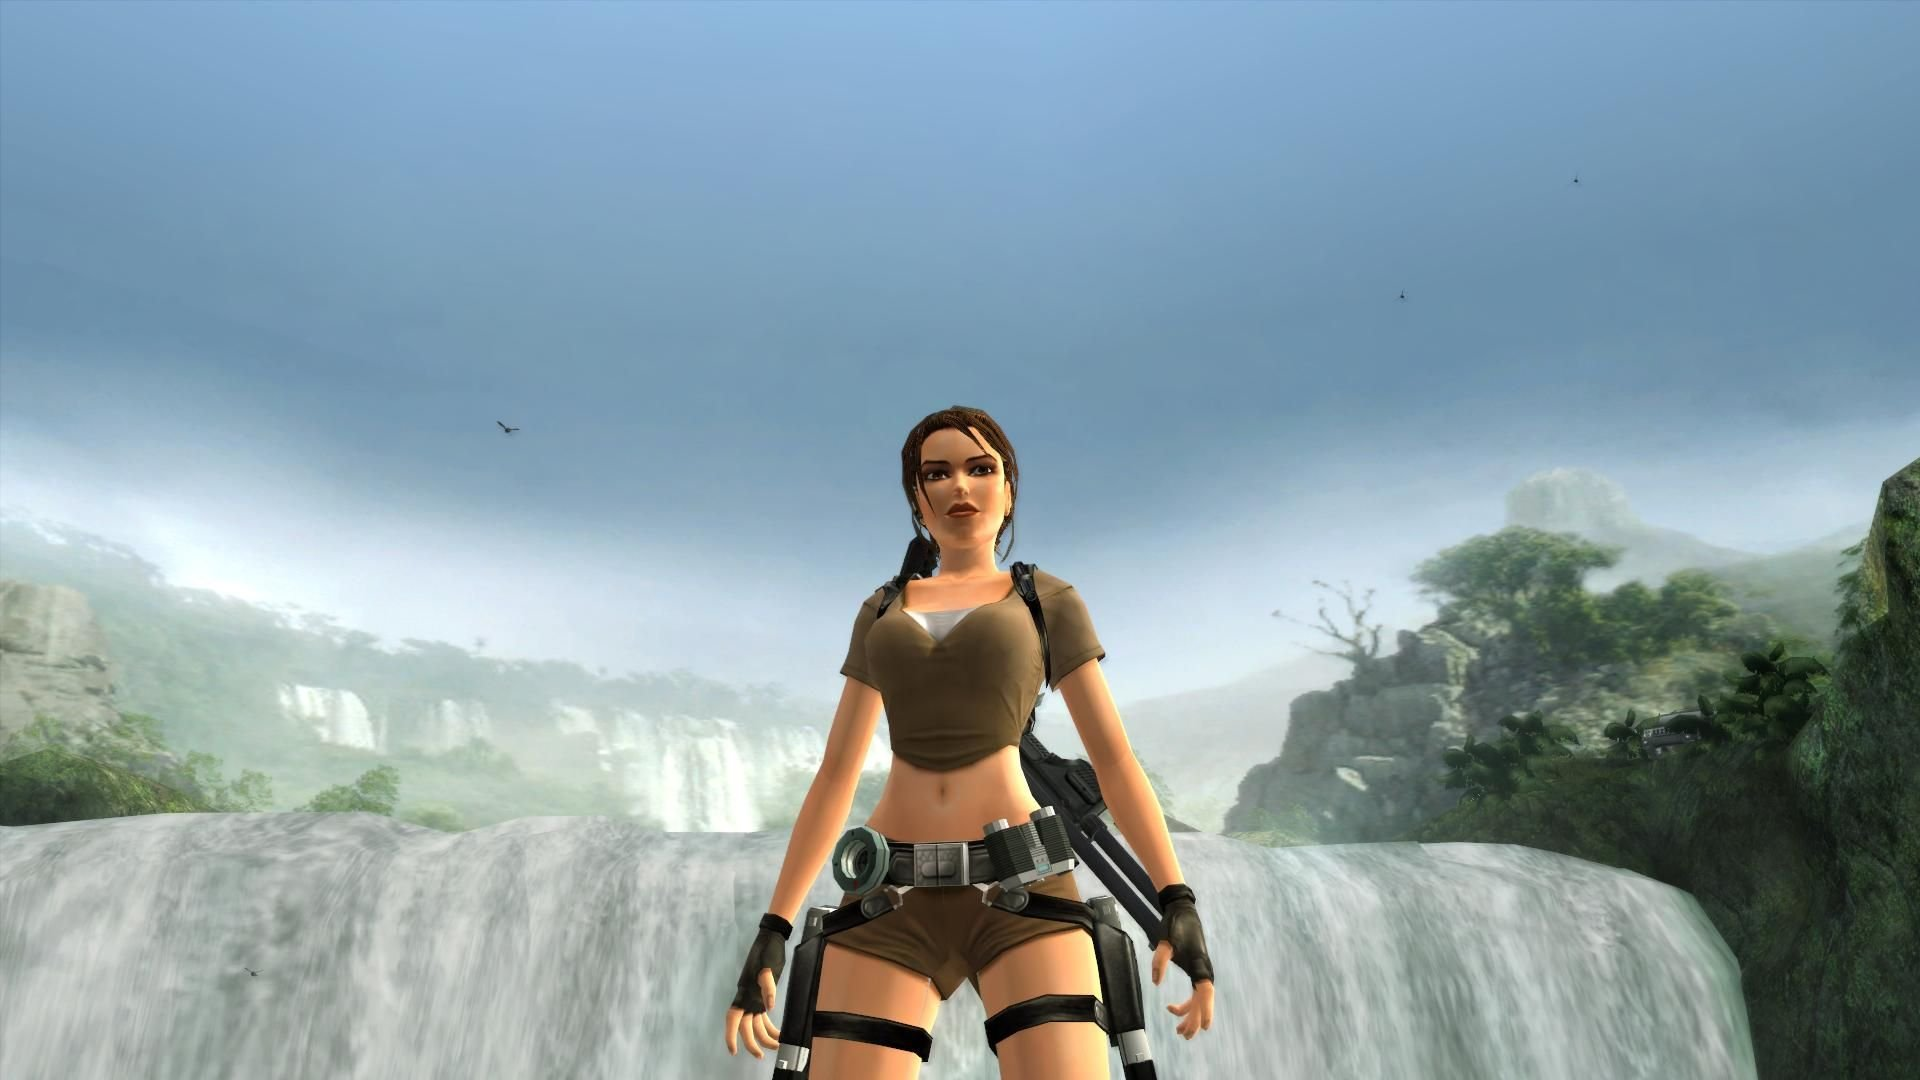 Tomb raider angel of darkness nude patch exposed image